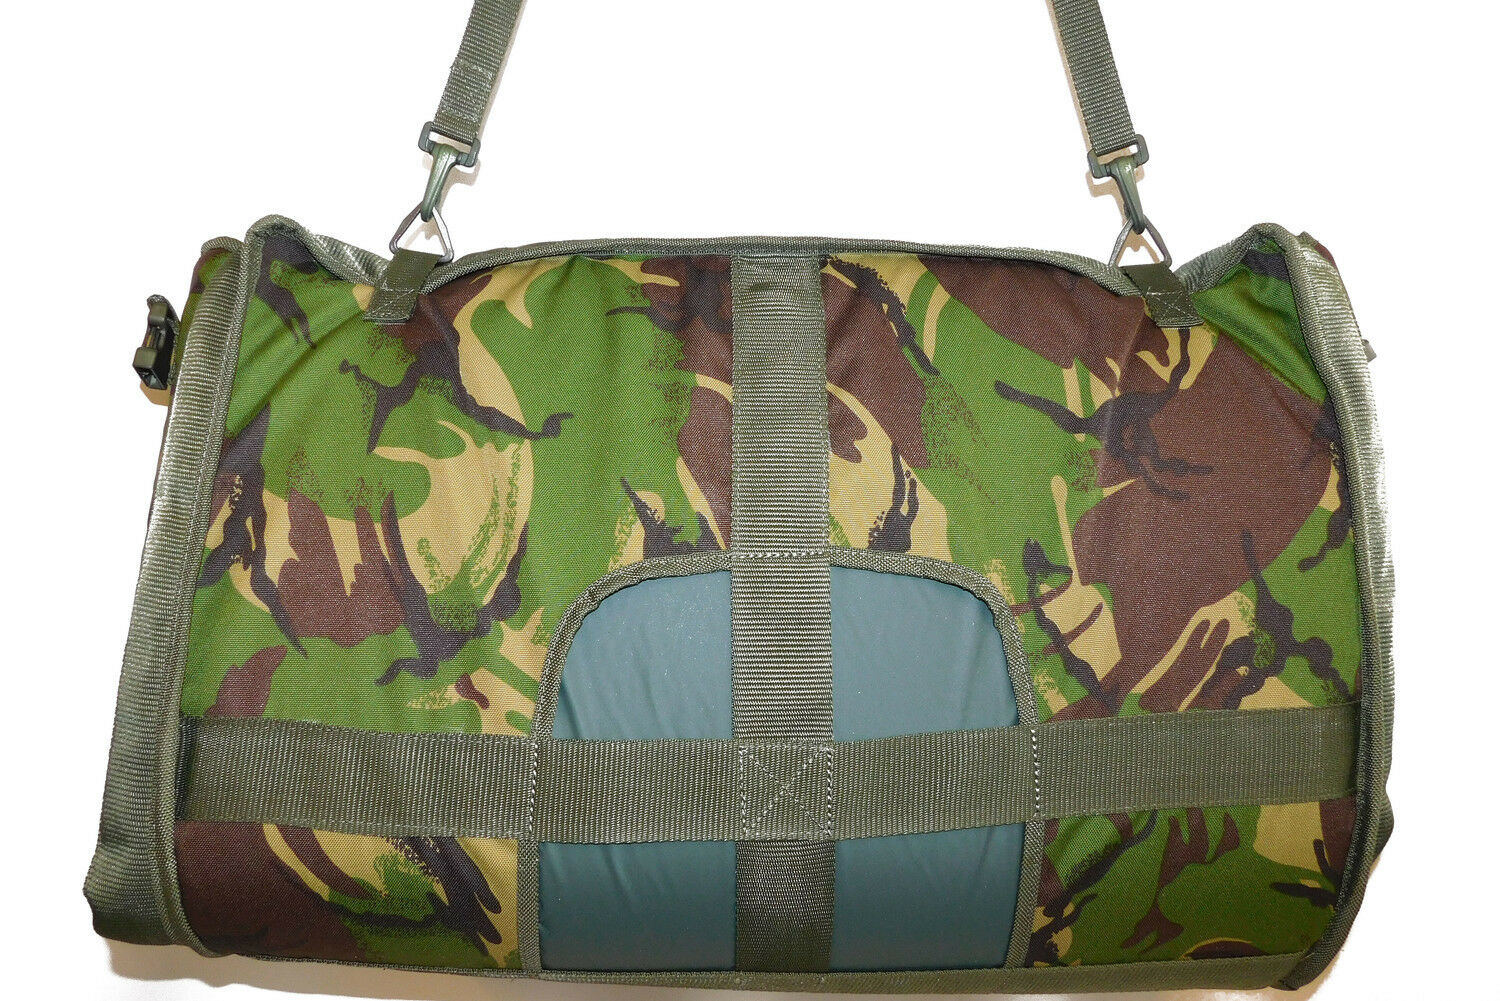 Cotswold Aquarius Camo Flat Pack Cradle Mat With Carry Handle NEW Carp Fishing